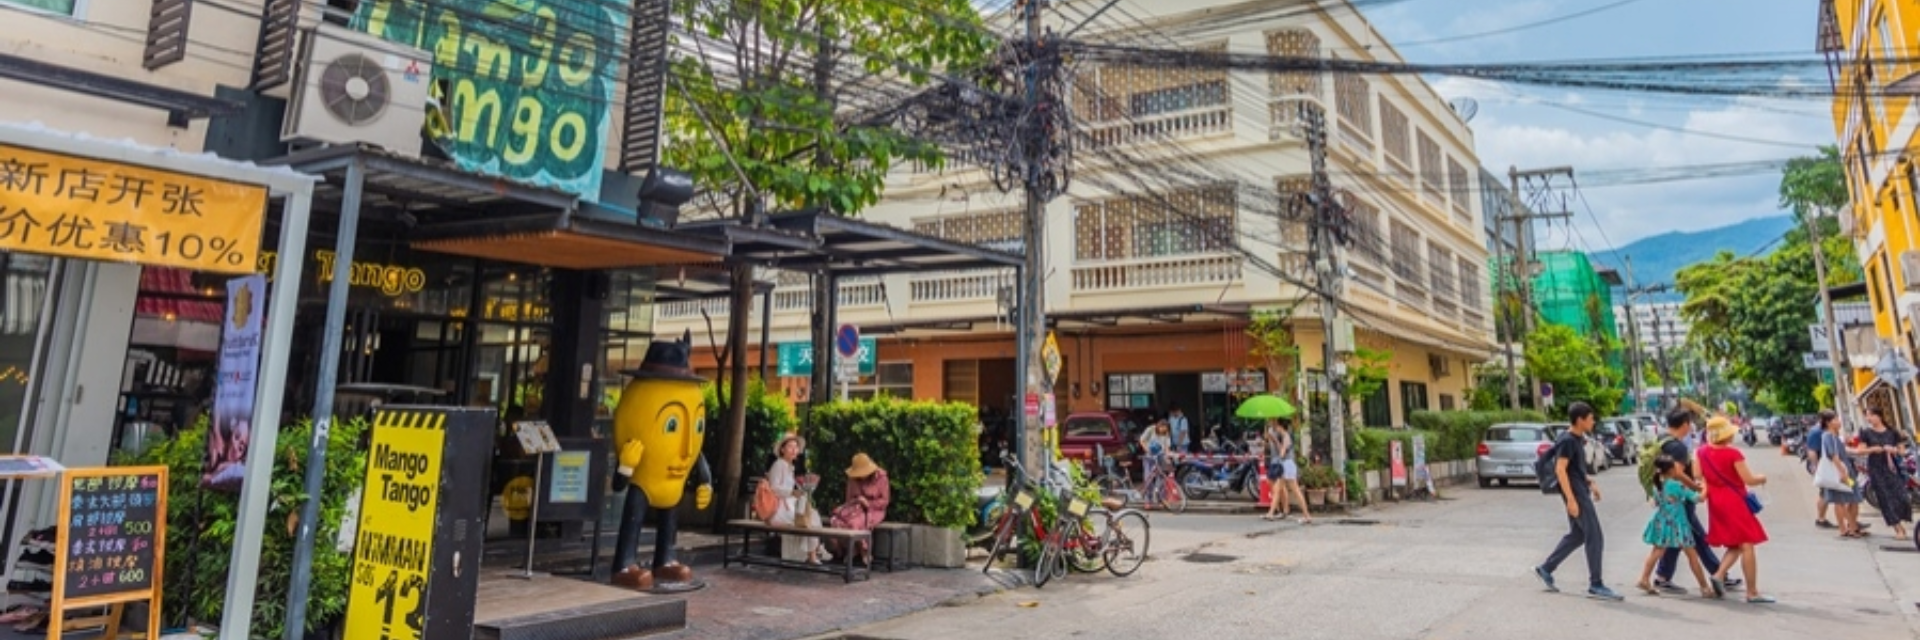 STYLISH CHIANG MAI ON NIMMAN